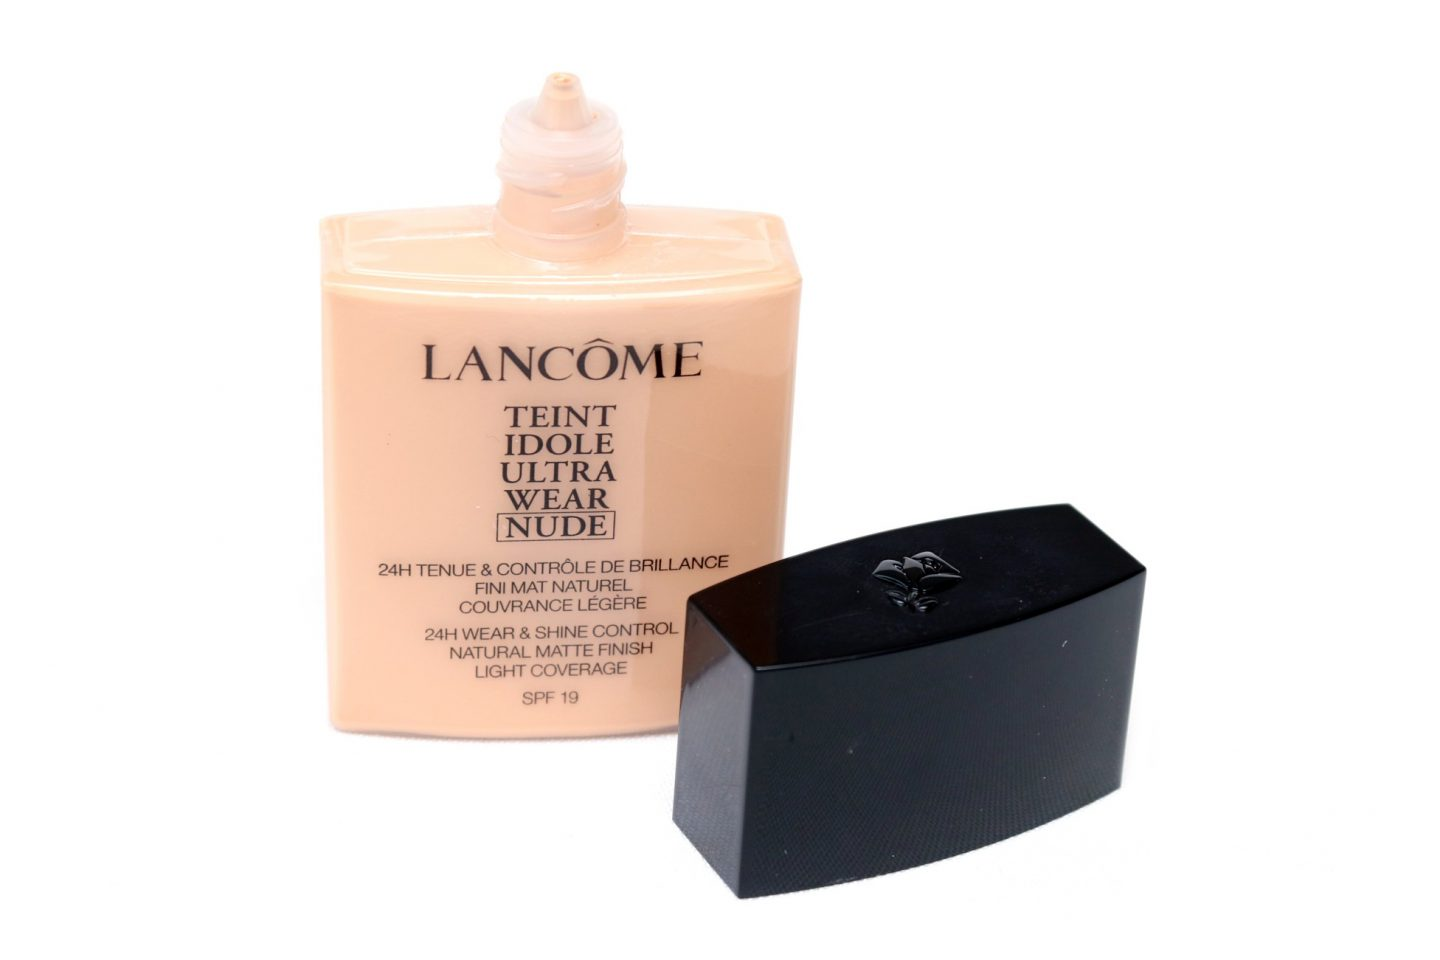 Lancôme Teint Idole Ultra Wear Nude Review